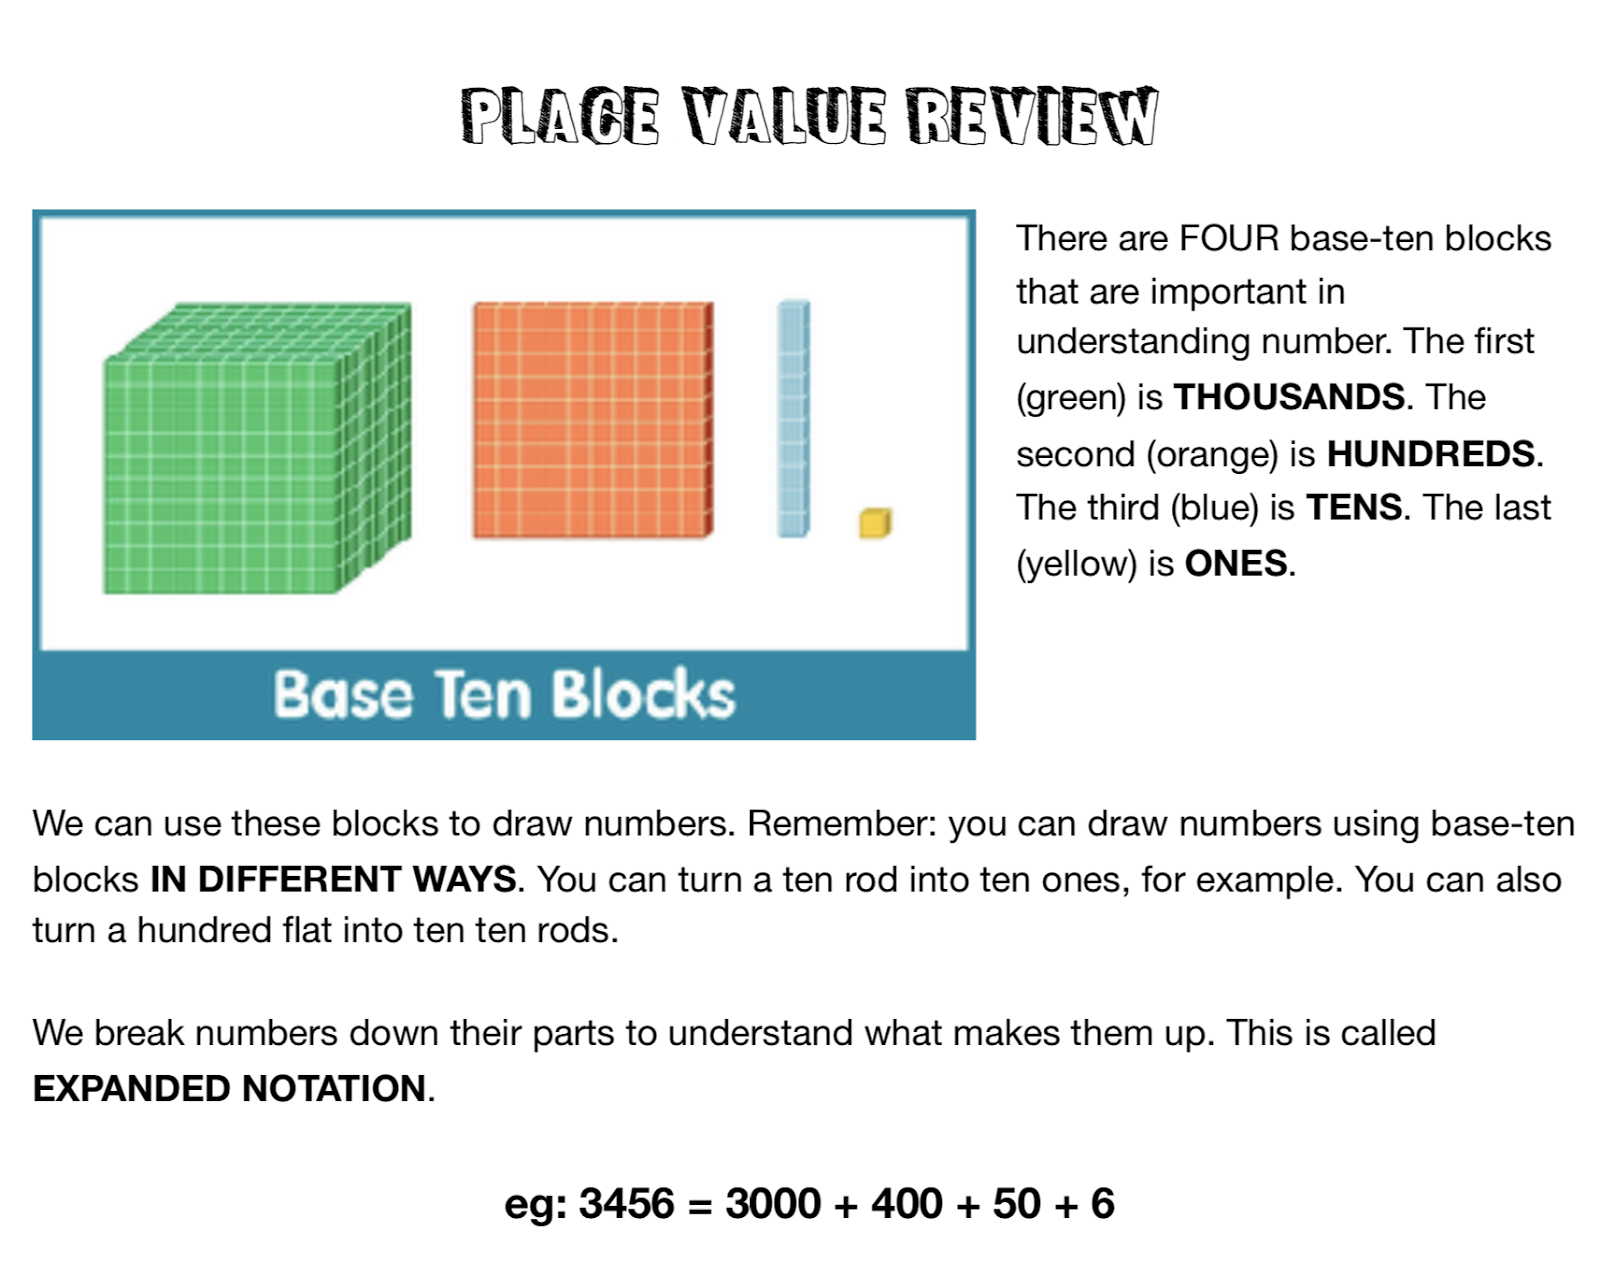 Place Value Review - PLEASE READ! | Mr  Reimer's Classroom Blog